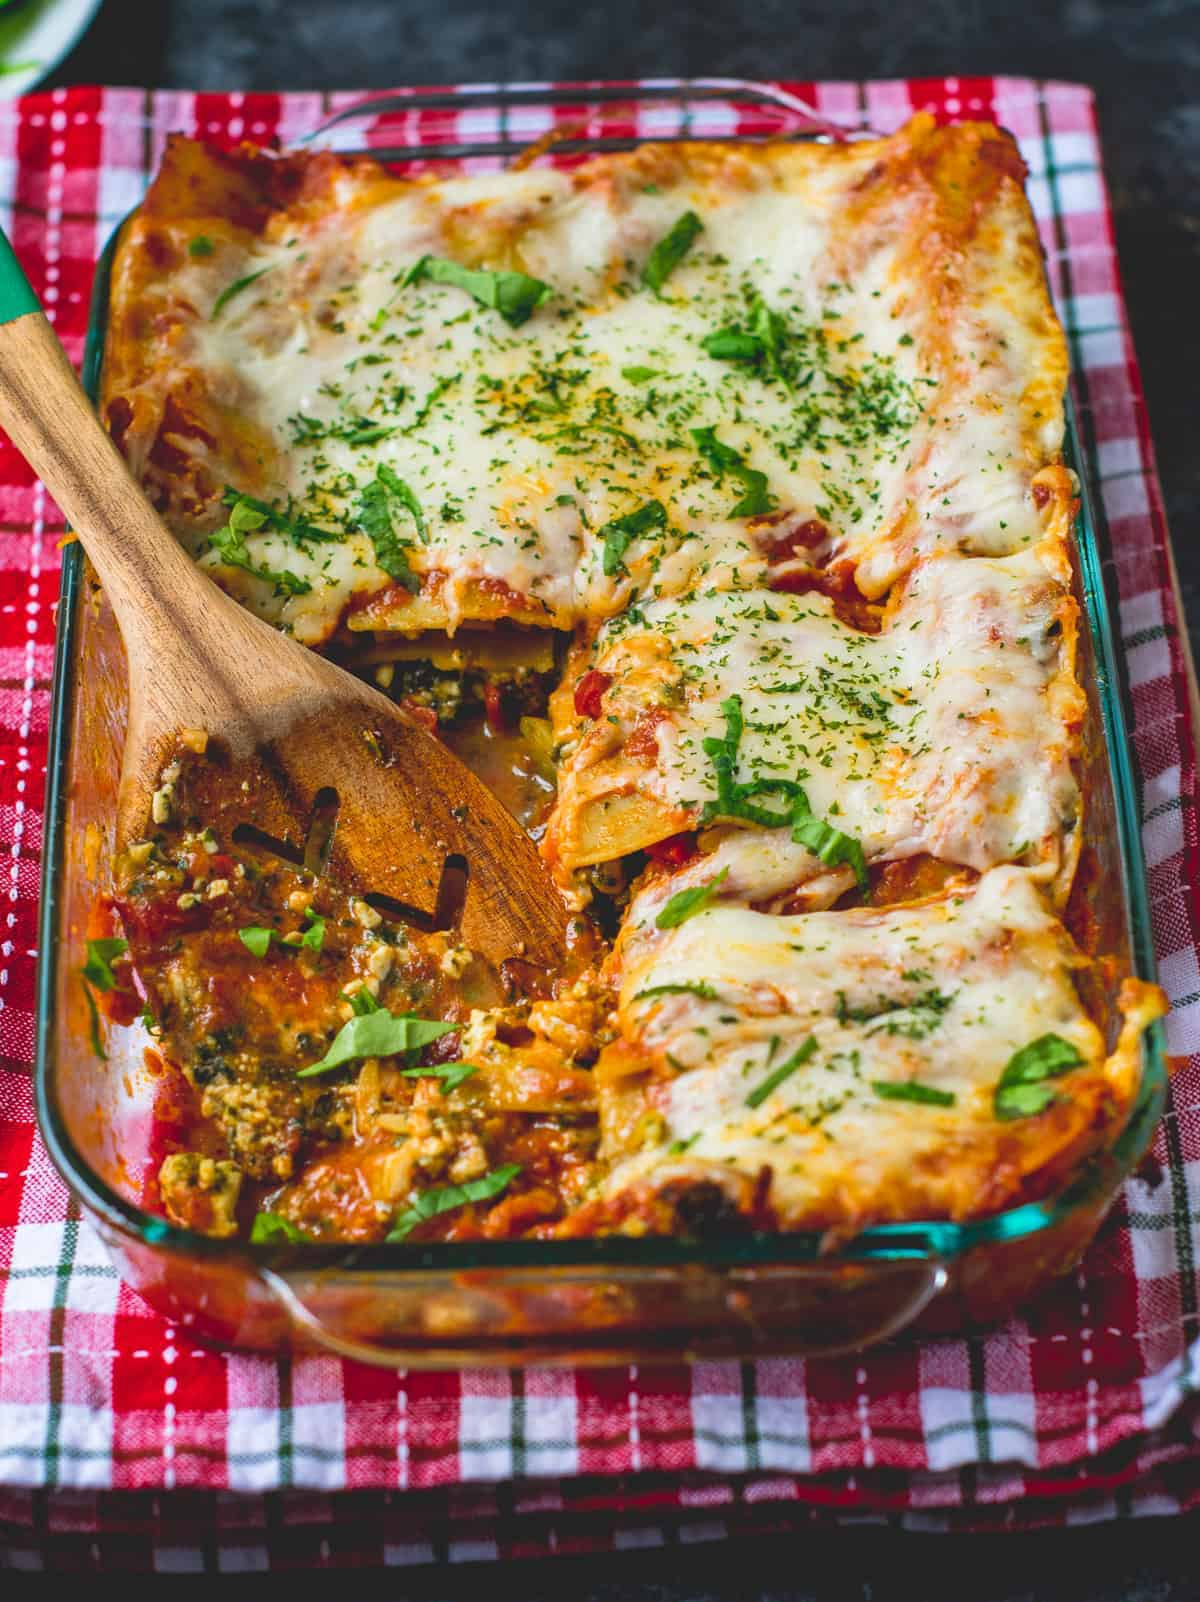 Veggie lasagna in a baking pan with a serving spoon